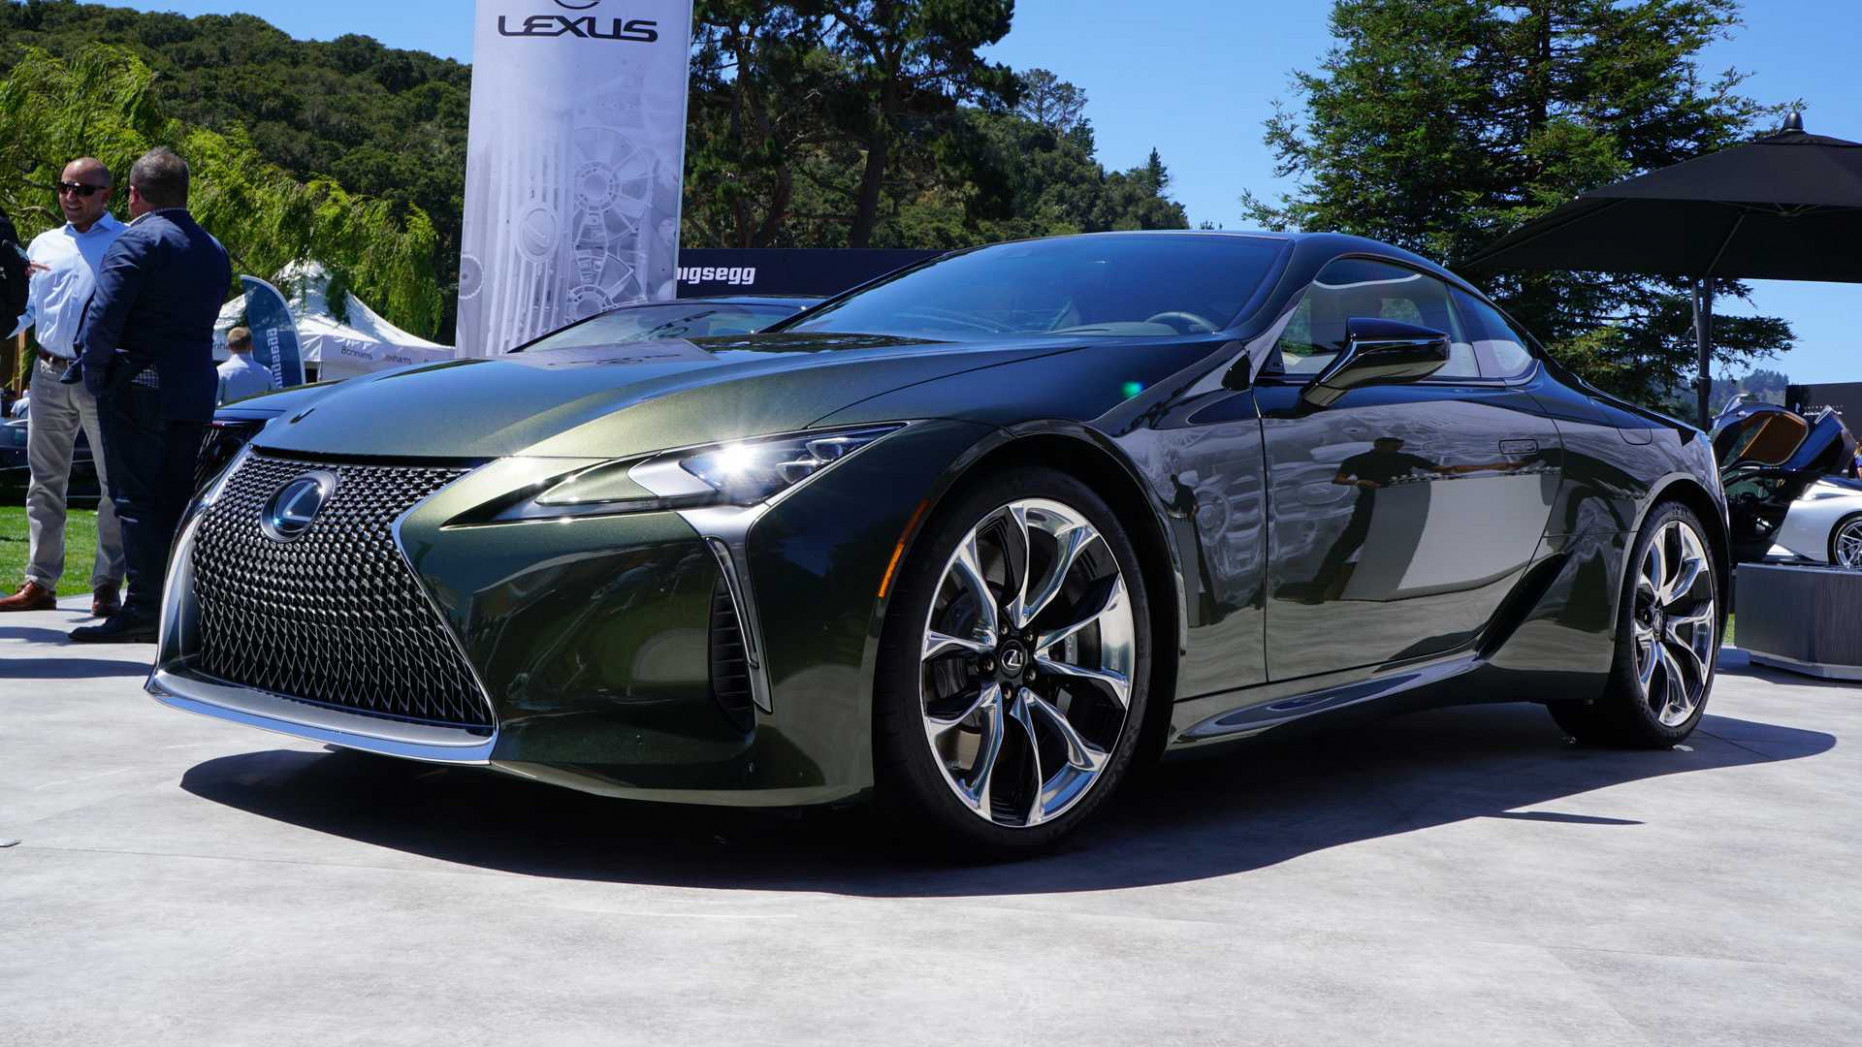 10 Lexus LC Inspiration Series Has Us Green With Envy [UPDATE] - 2020 lexus lc price